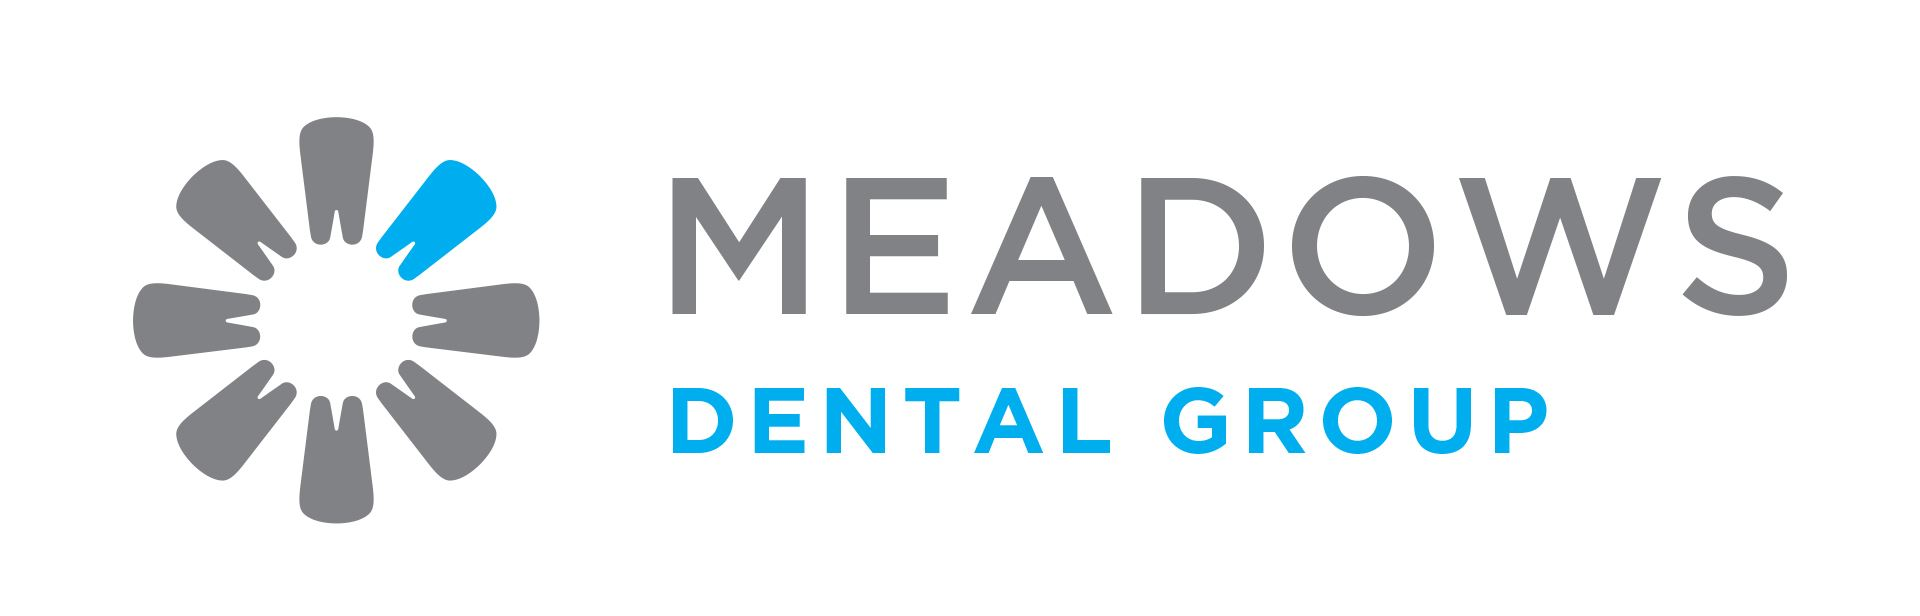 MeadowsDental